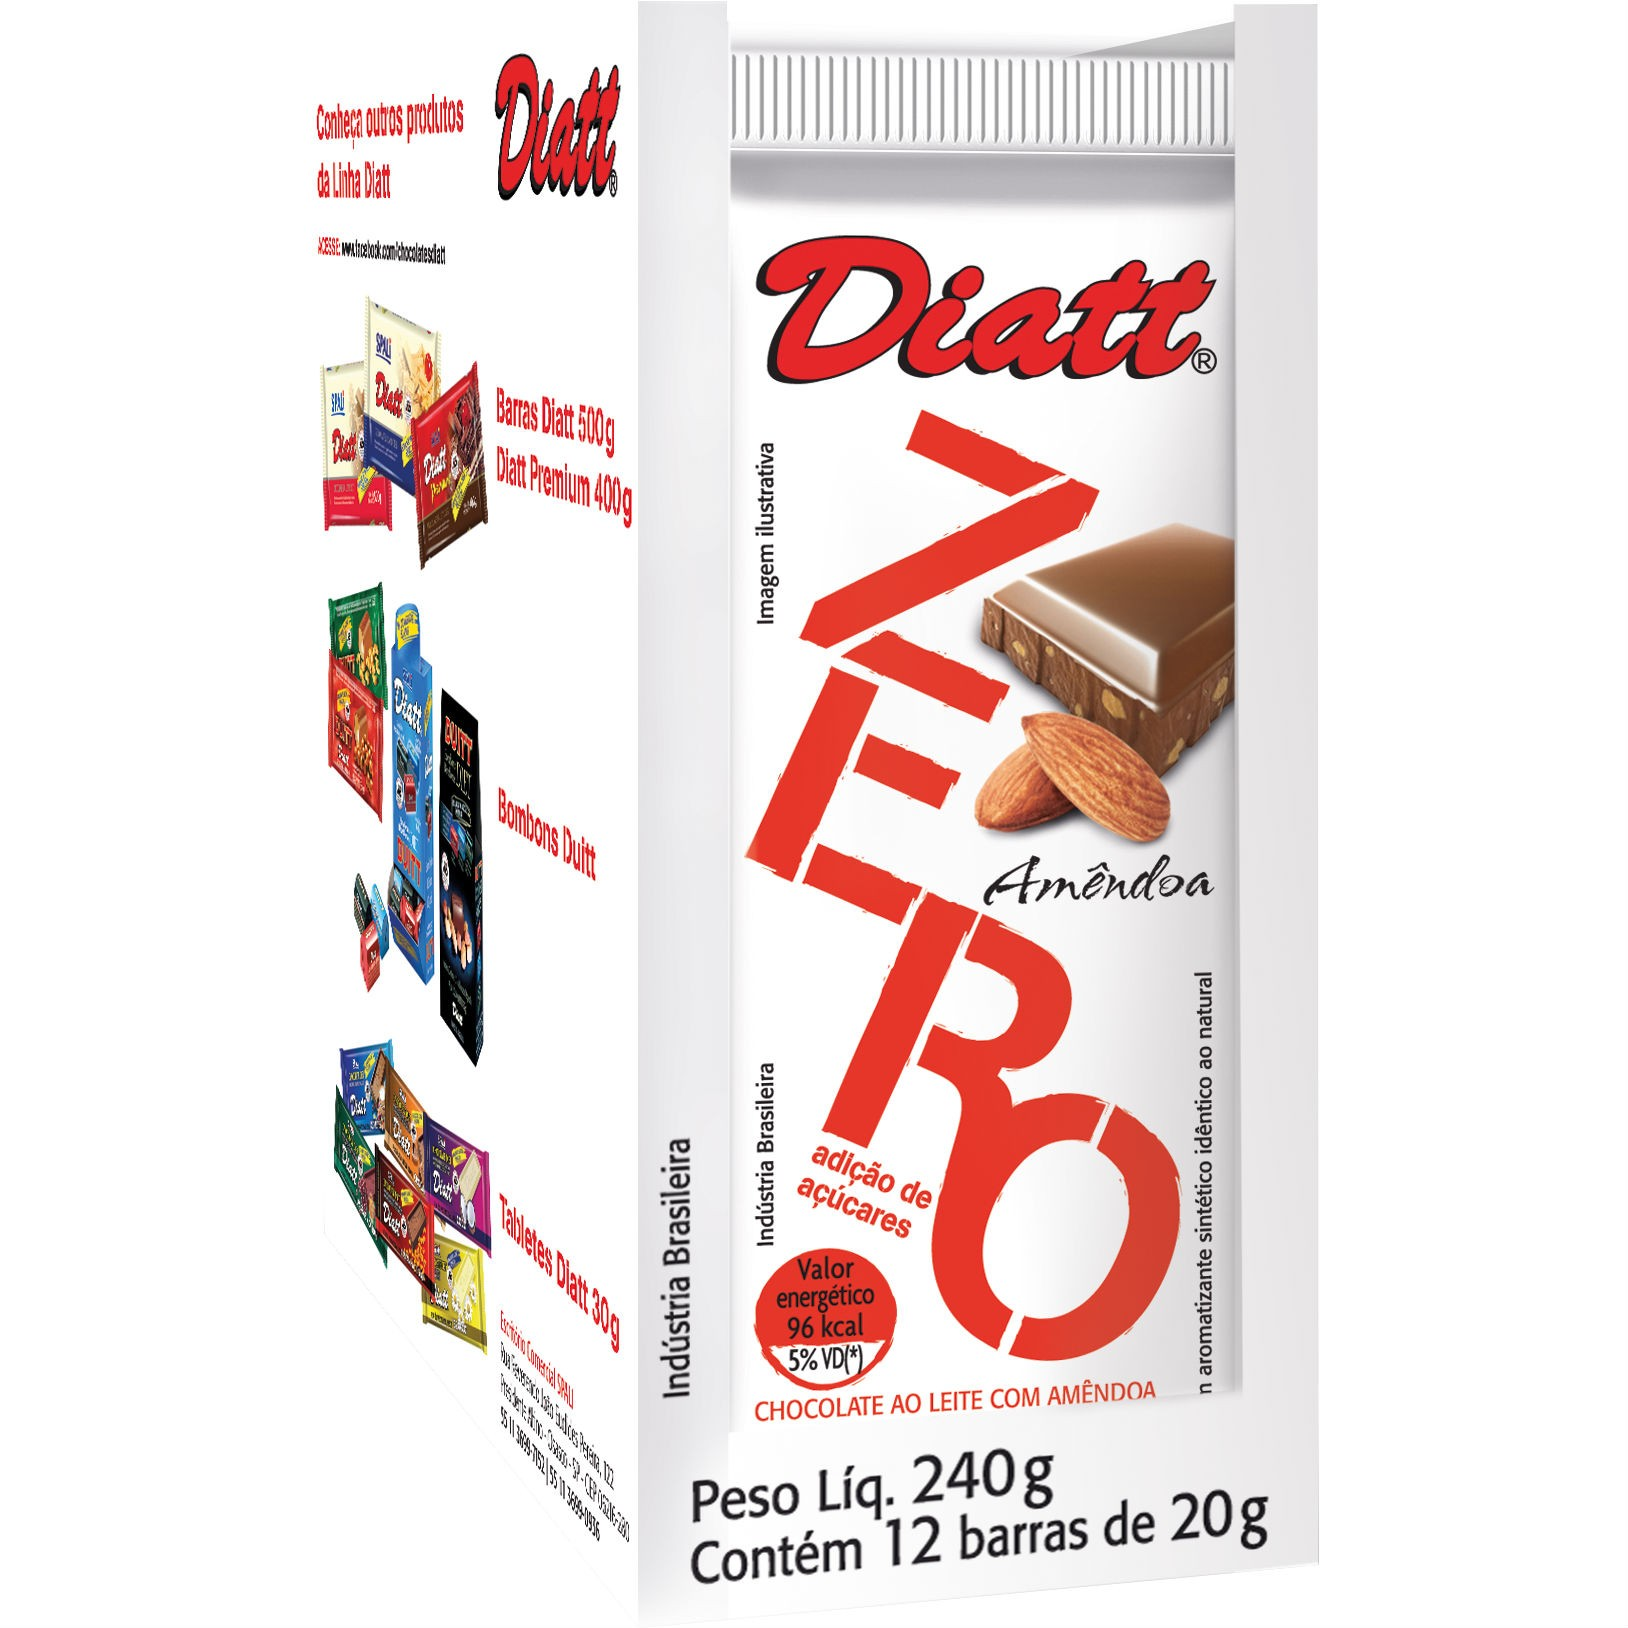 Chocolate Zero Amêndoa 20g x12 display 240g - Diatt